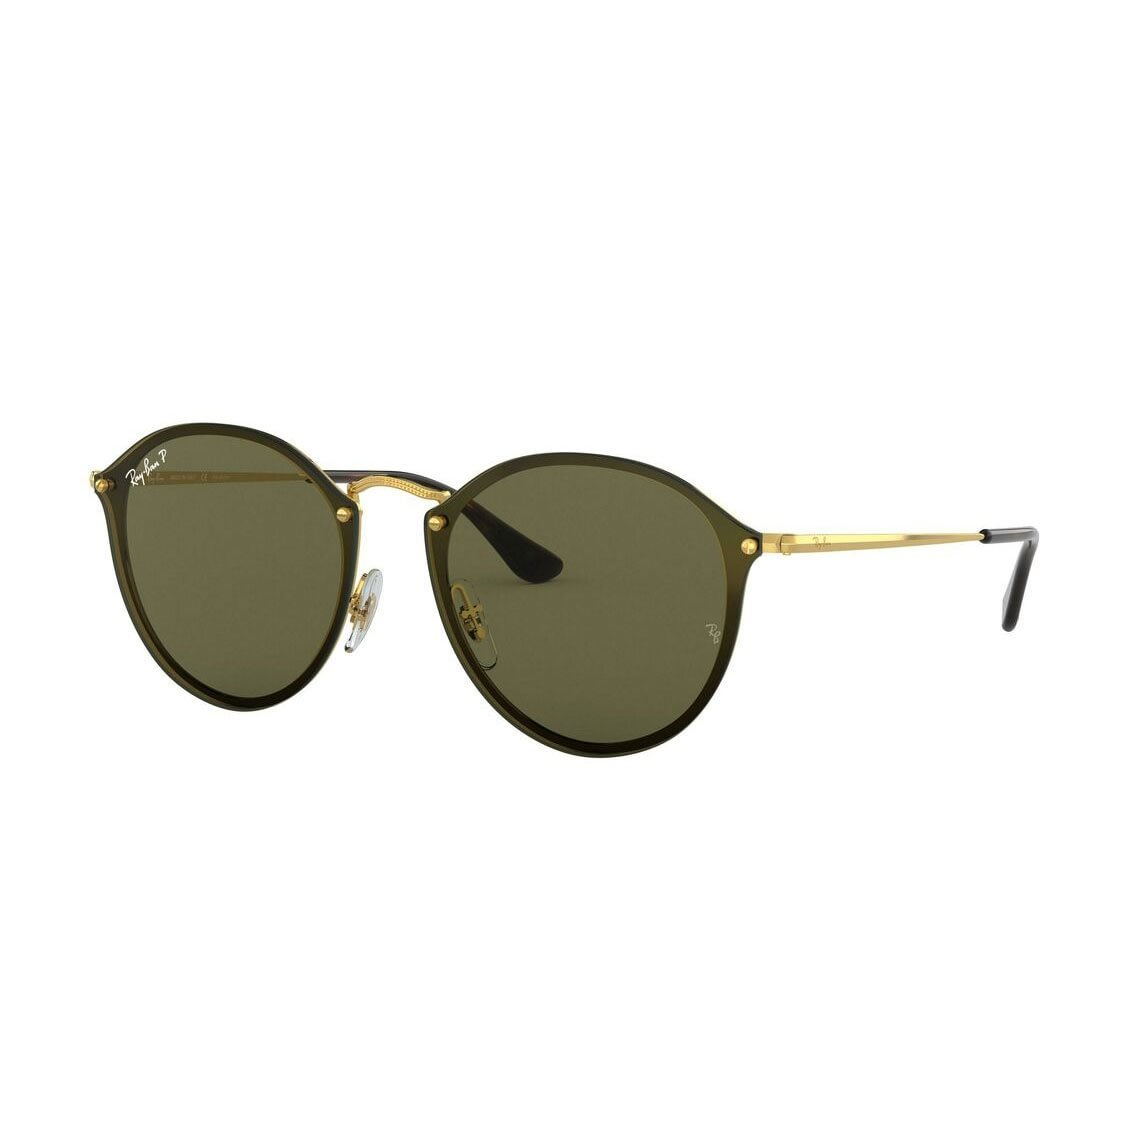 Ray-Ban Blaze round RB3574N 001/9A 59